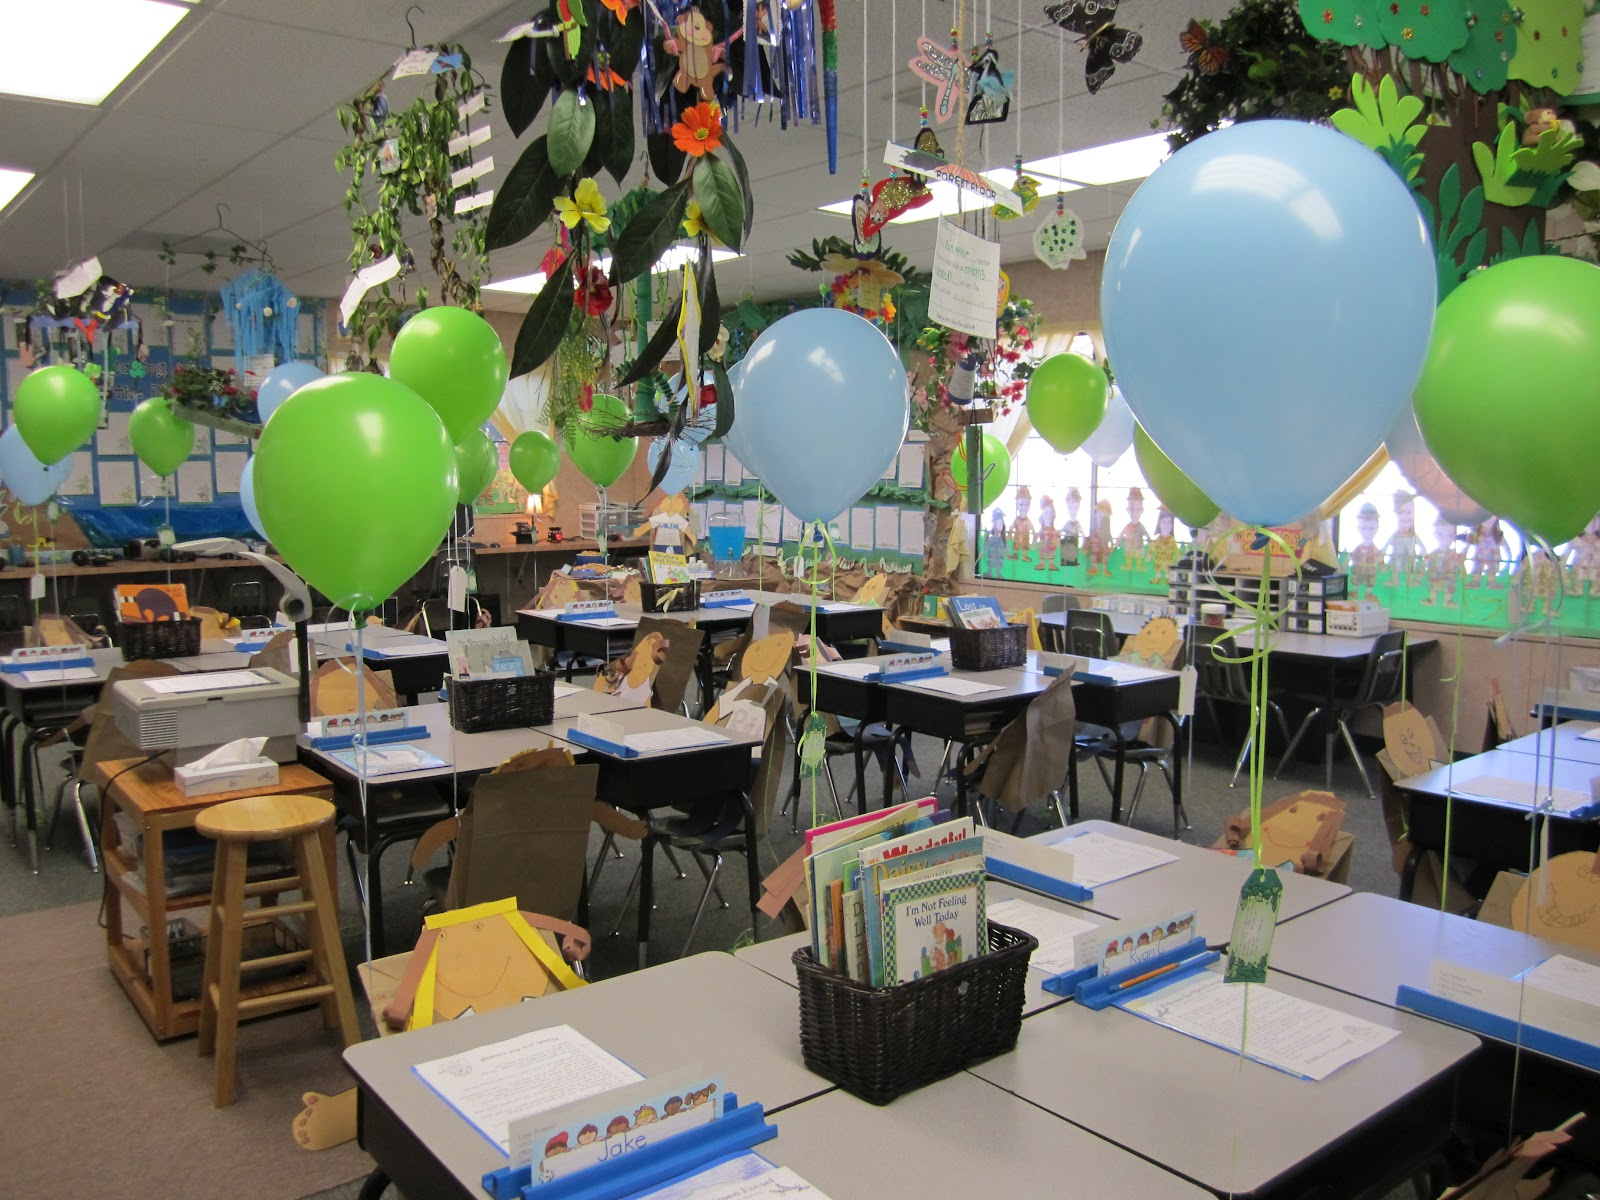 Elementary School Open House Ideas